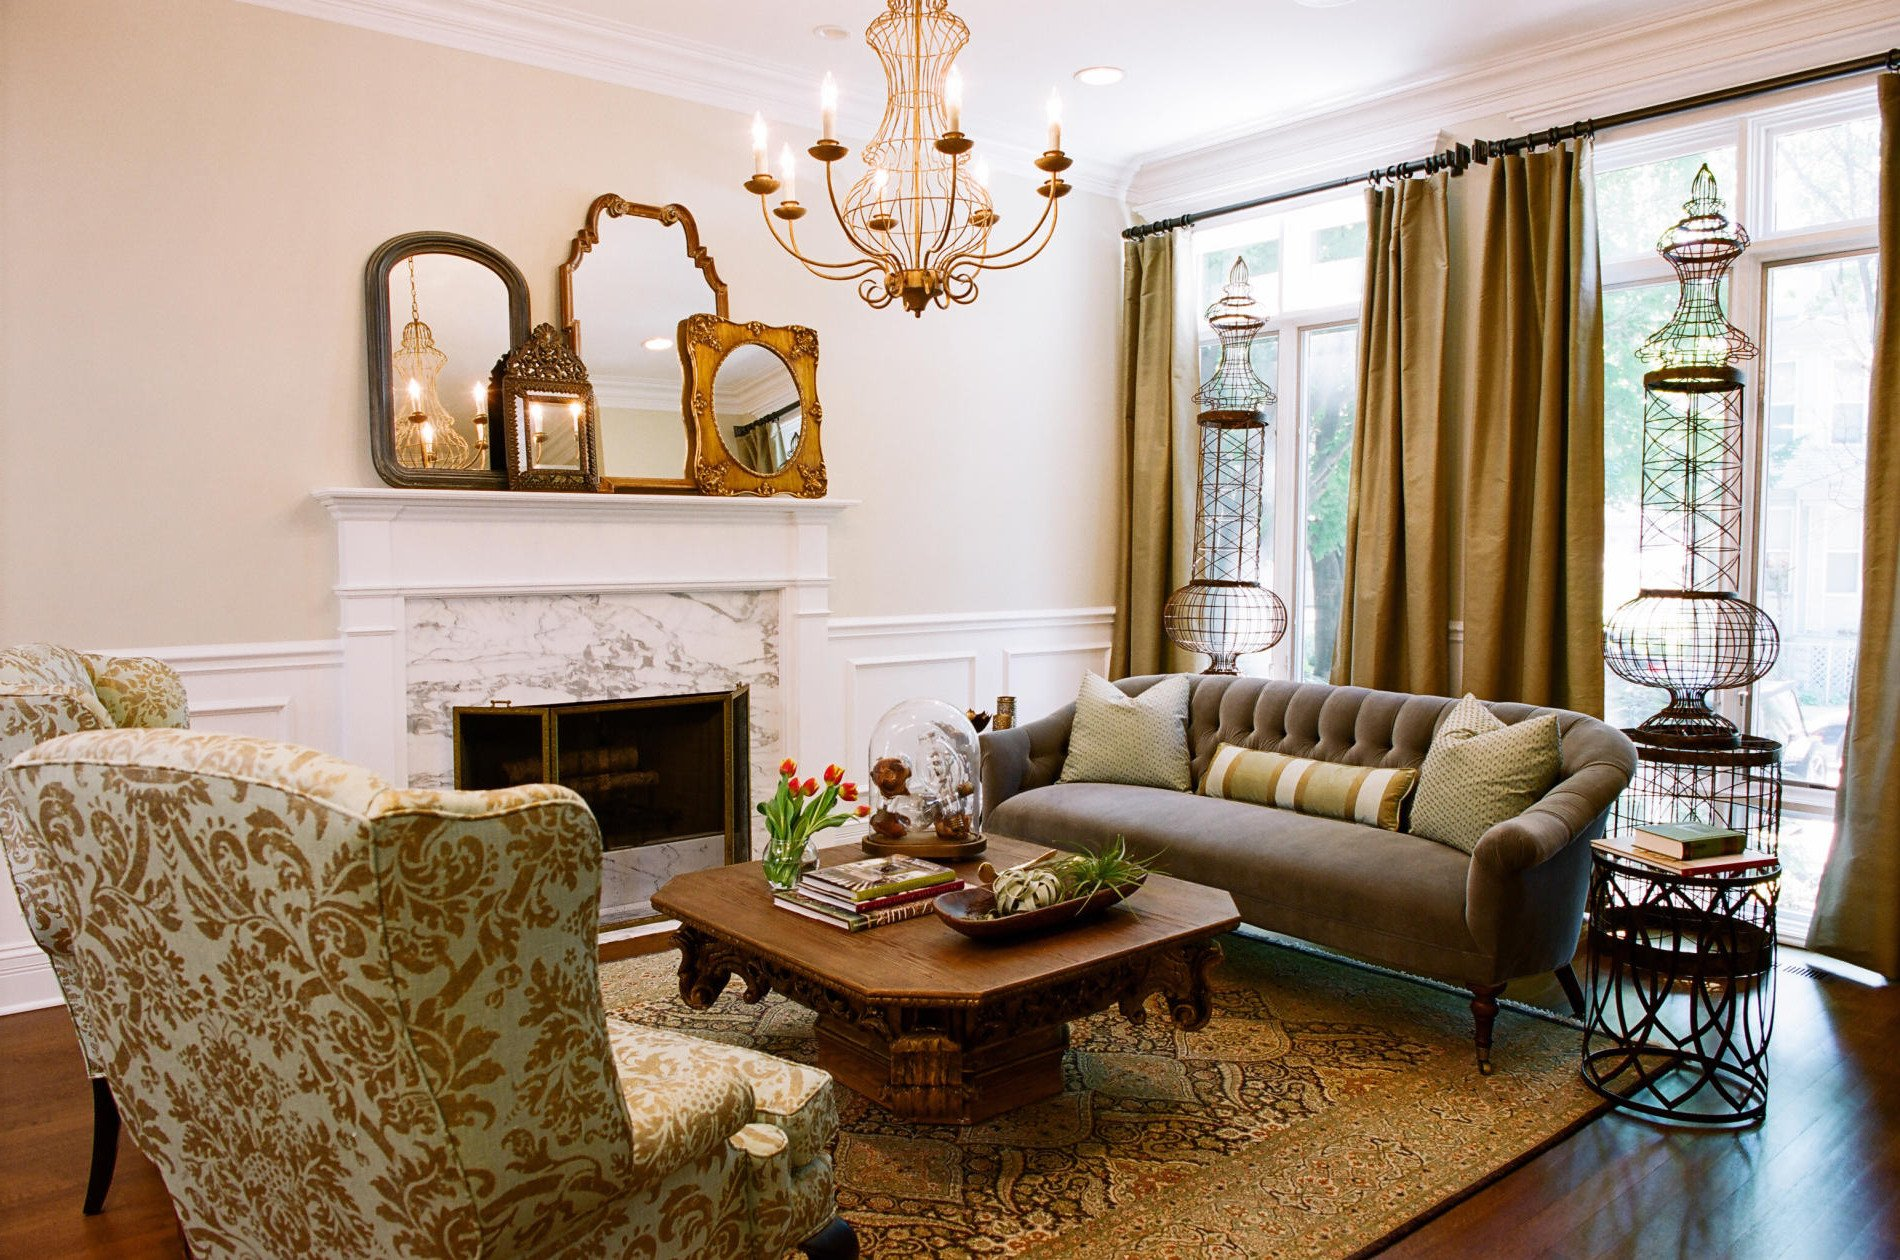 Country themed Living Room Decor Basic Styles Of Interior Designing Part 2